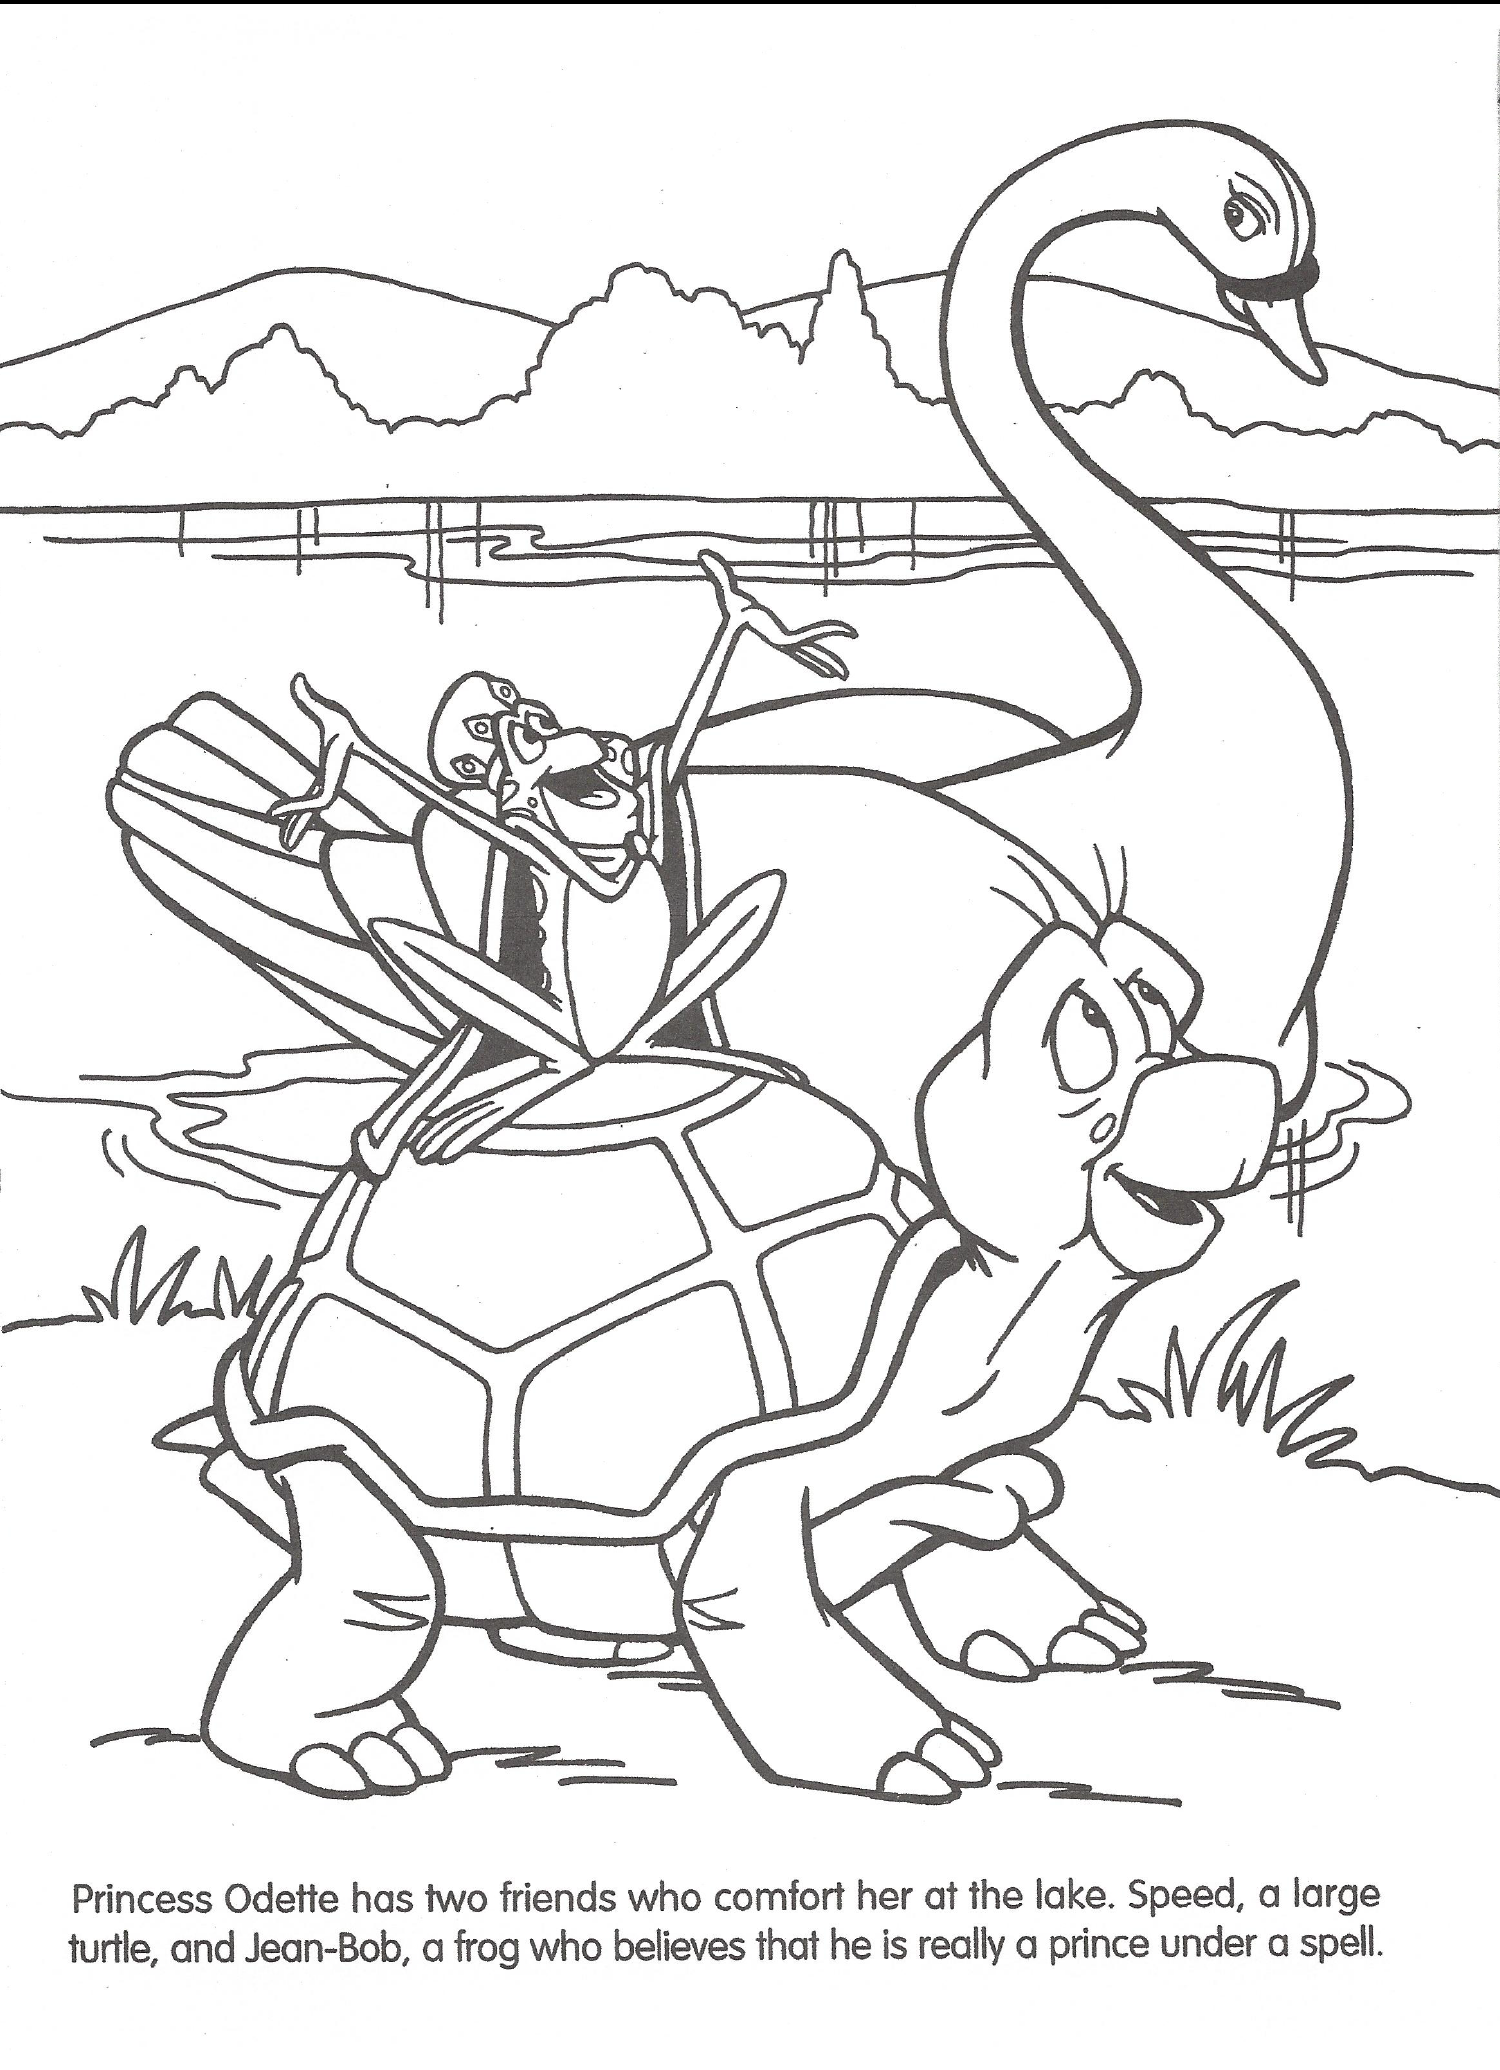 Swan princess coloring pages free - Swan Princess Coloring Pages Images Evil Queen The